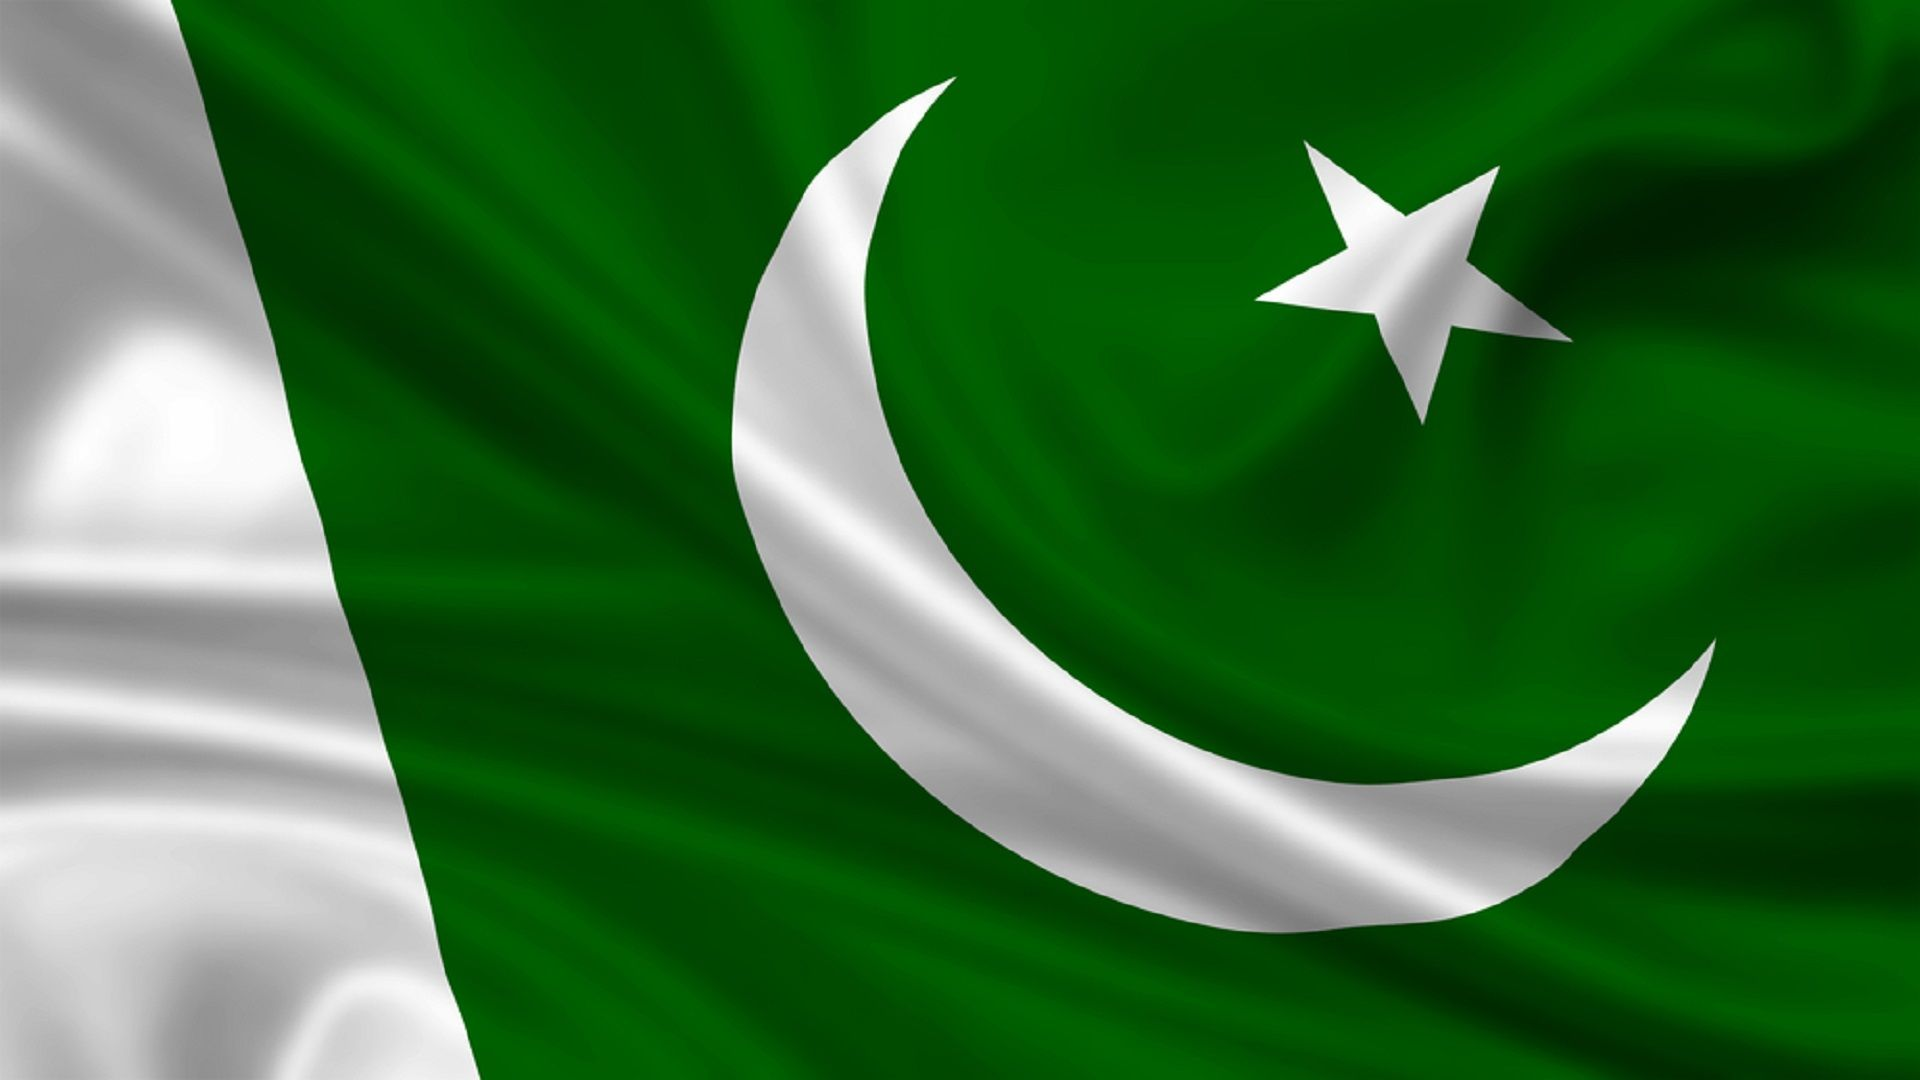 1920x1080 Flag Of Pakistan HD Wallpapers For Desktop